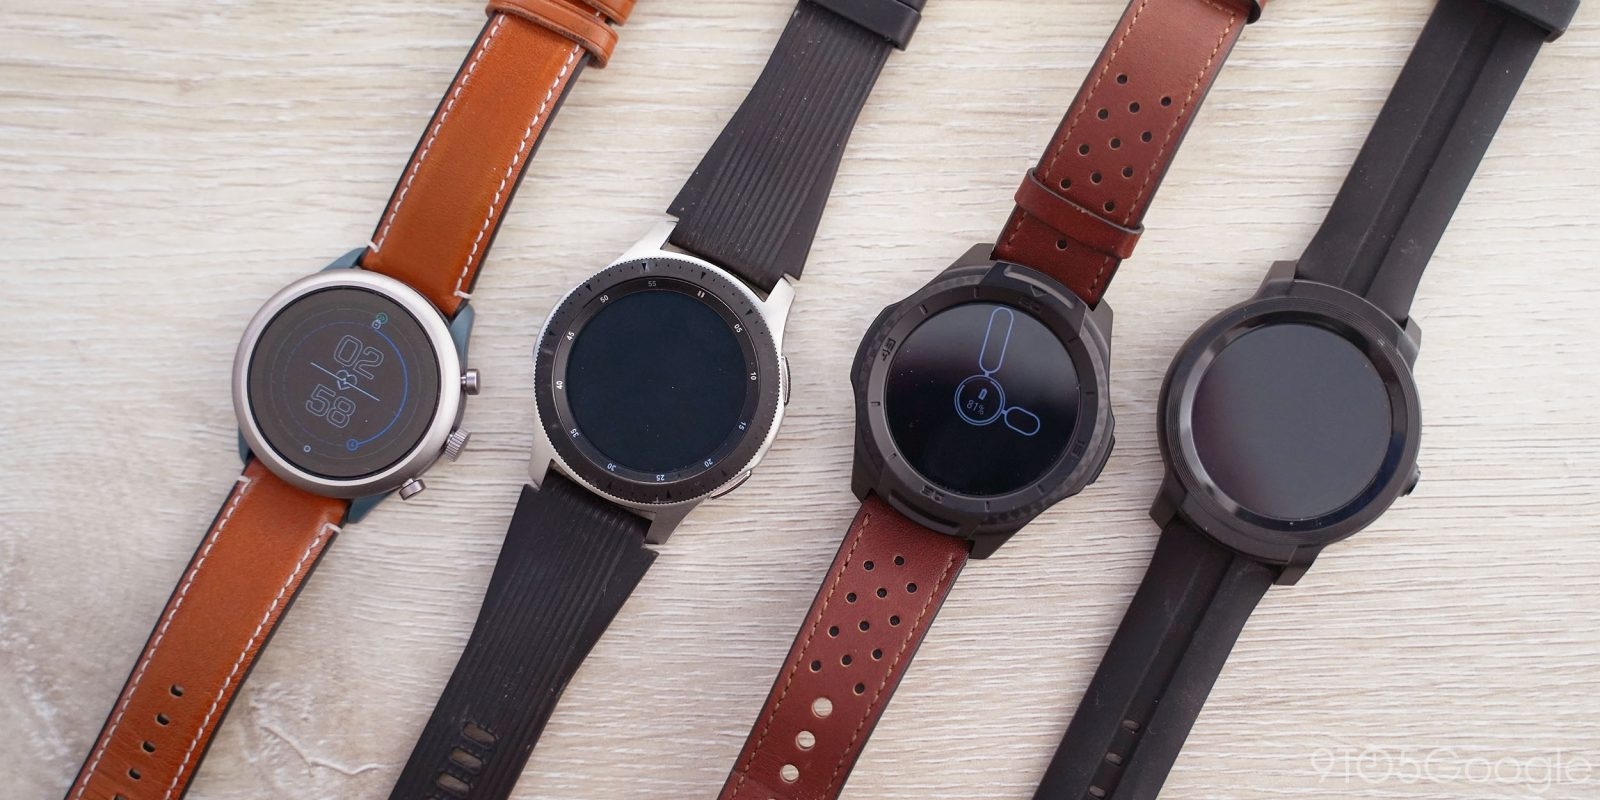 QnA VBage [Update: February 2019] The best smartwatches for Android you can buy today